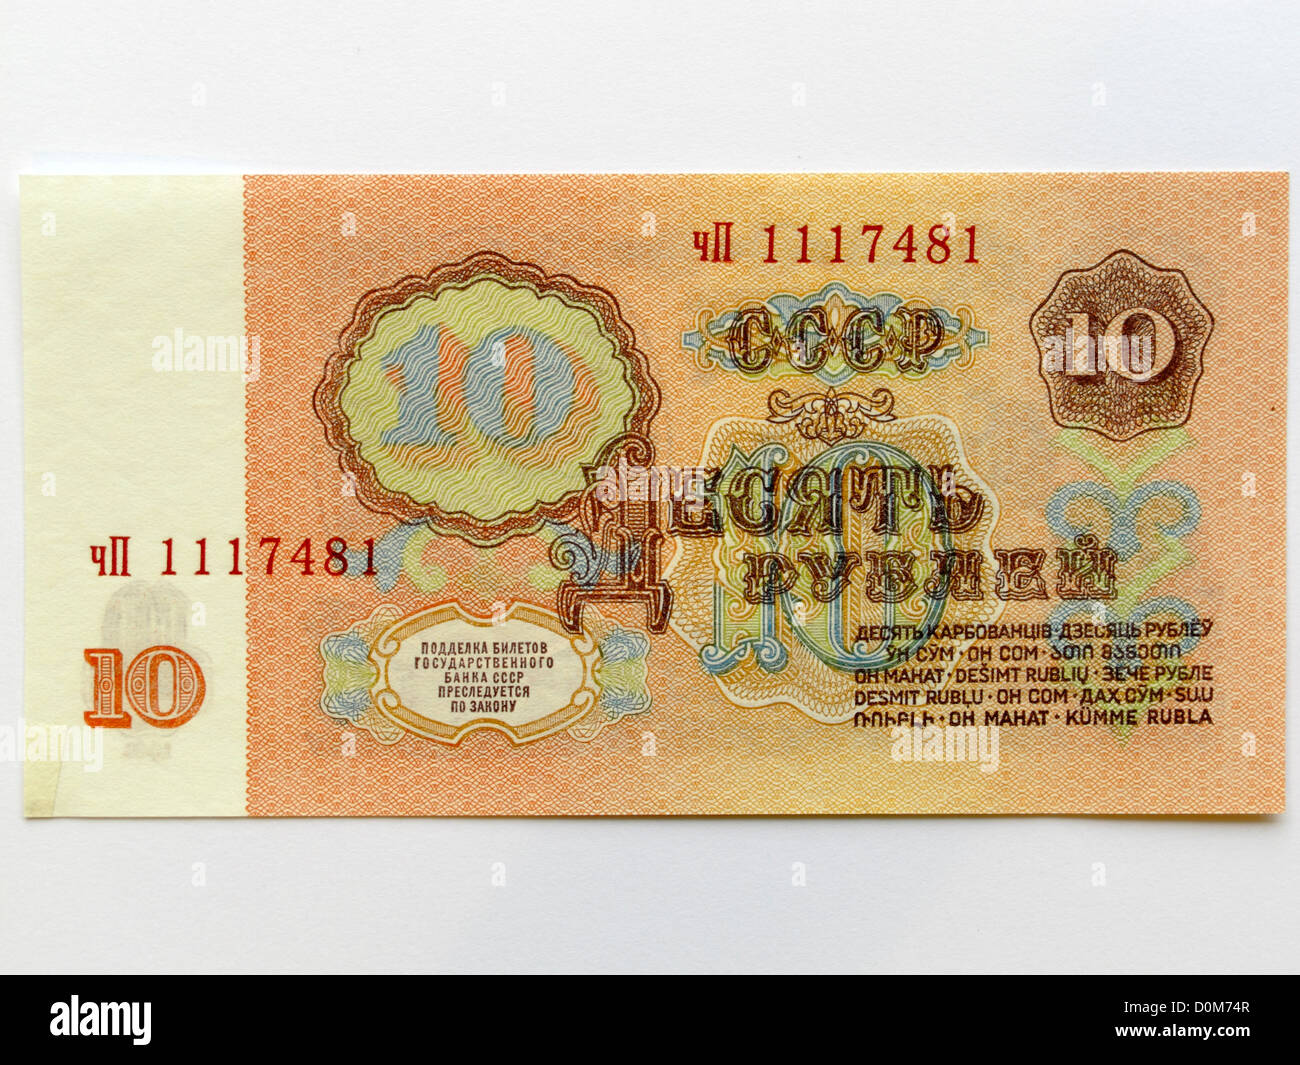 10 ten ruble rouble note 1961 russian russia soviet communist banknote money cccp mint - Stock Image